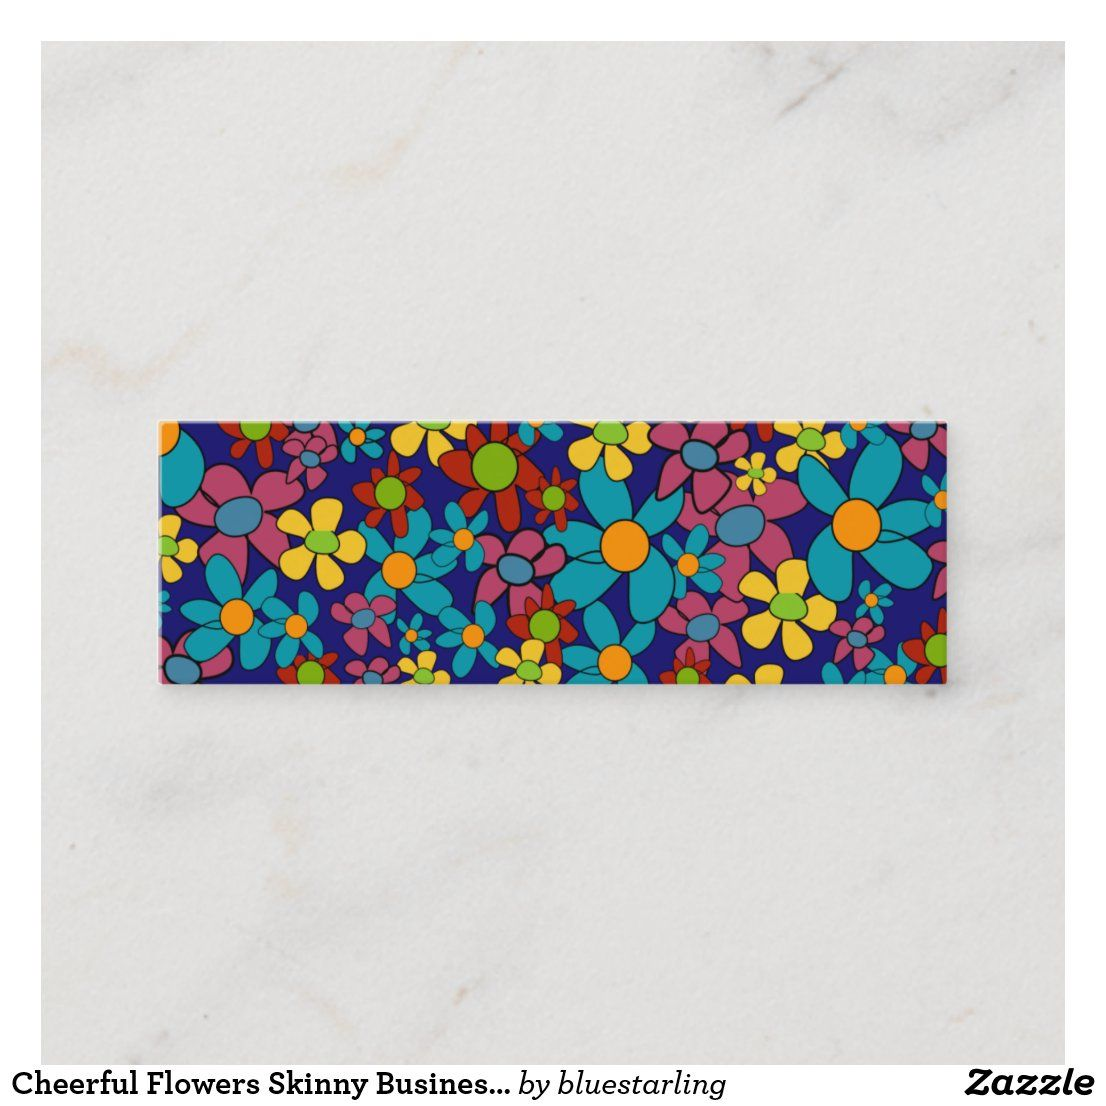 Cheerful Flowers Skinny Business Card Template Zazzle Com In 2020 Business Card Template Card Template Mini Business Card